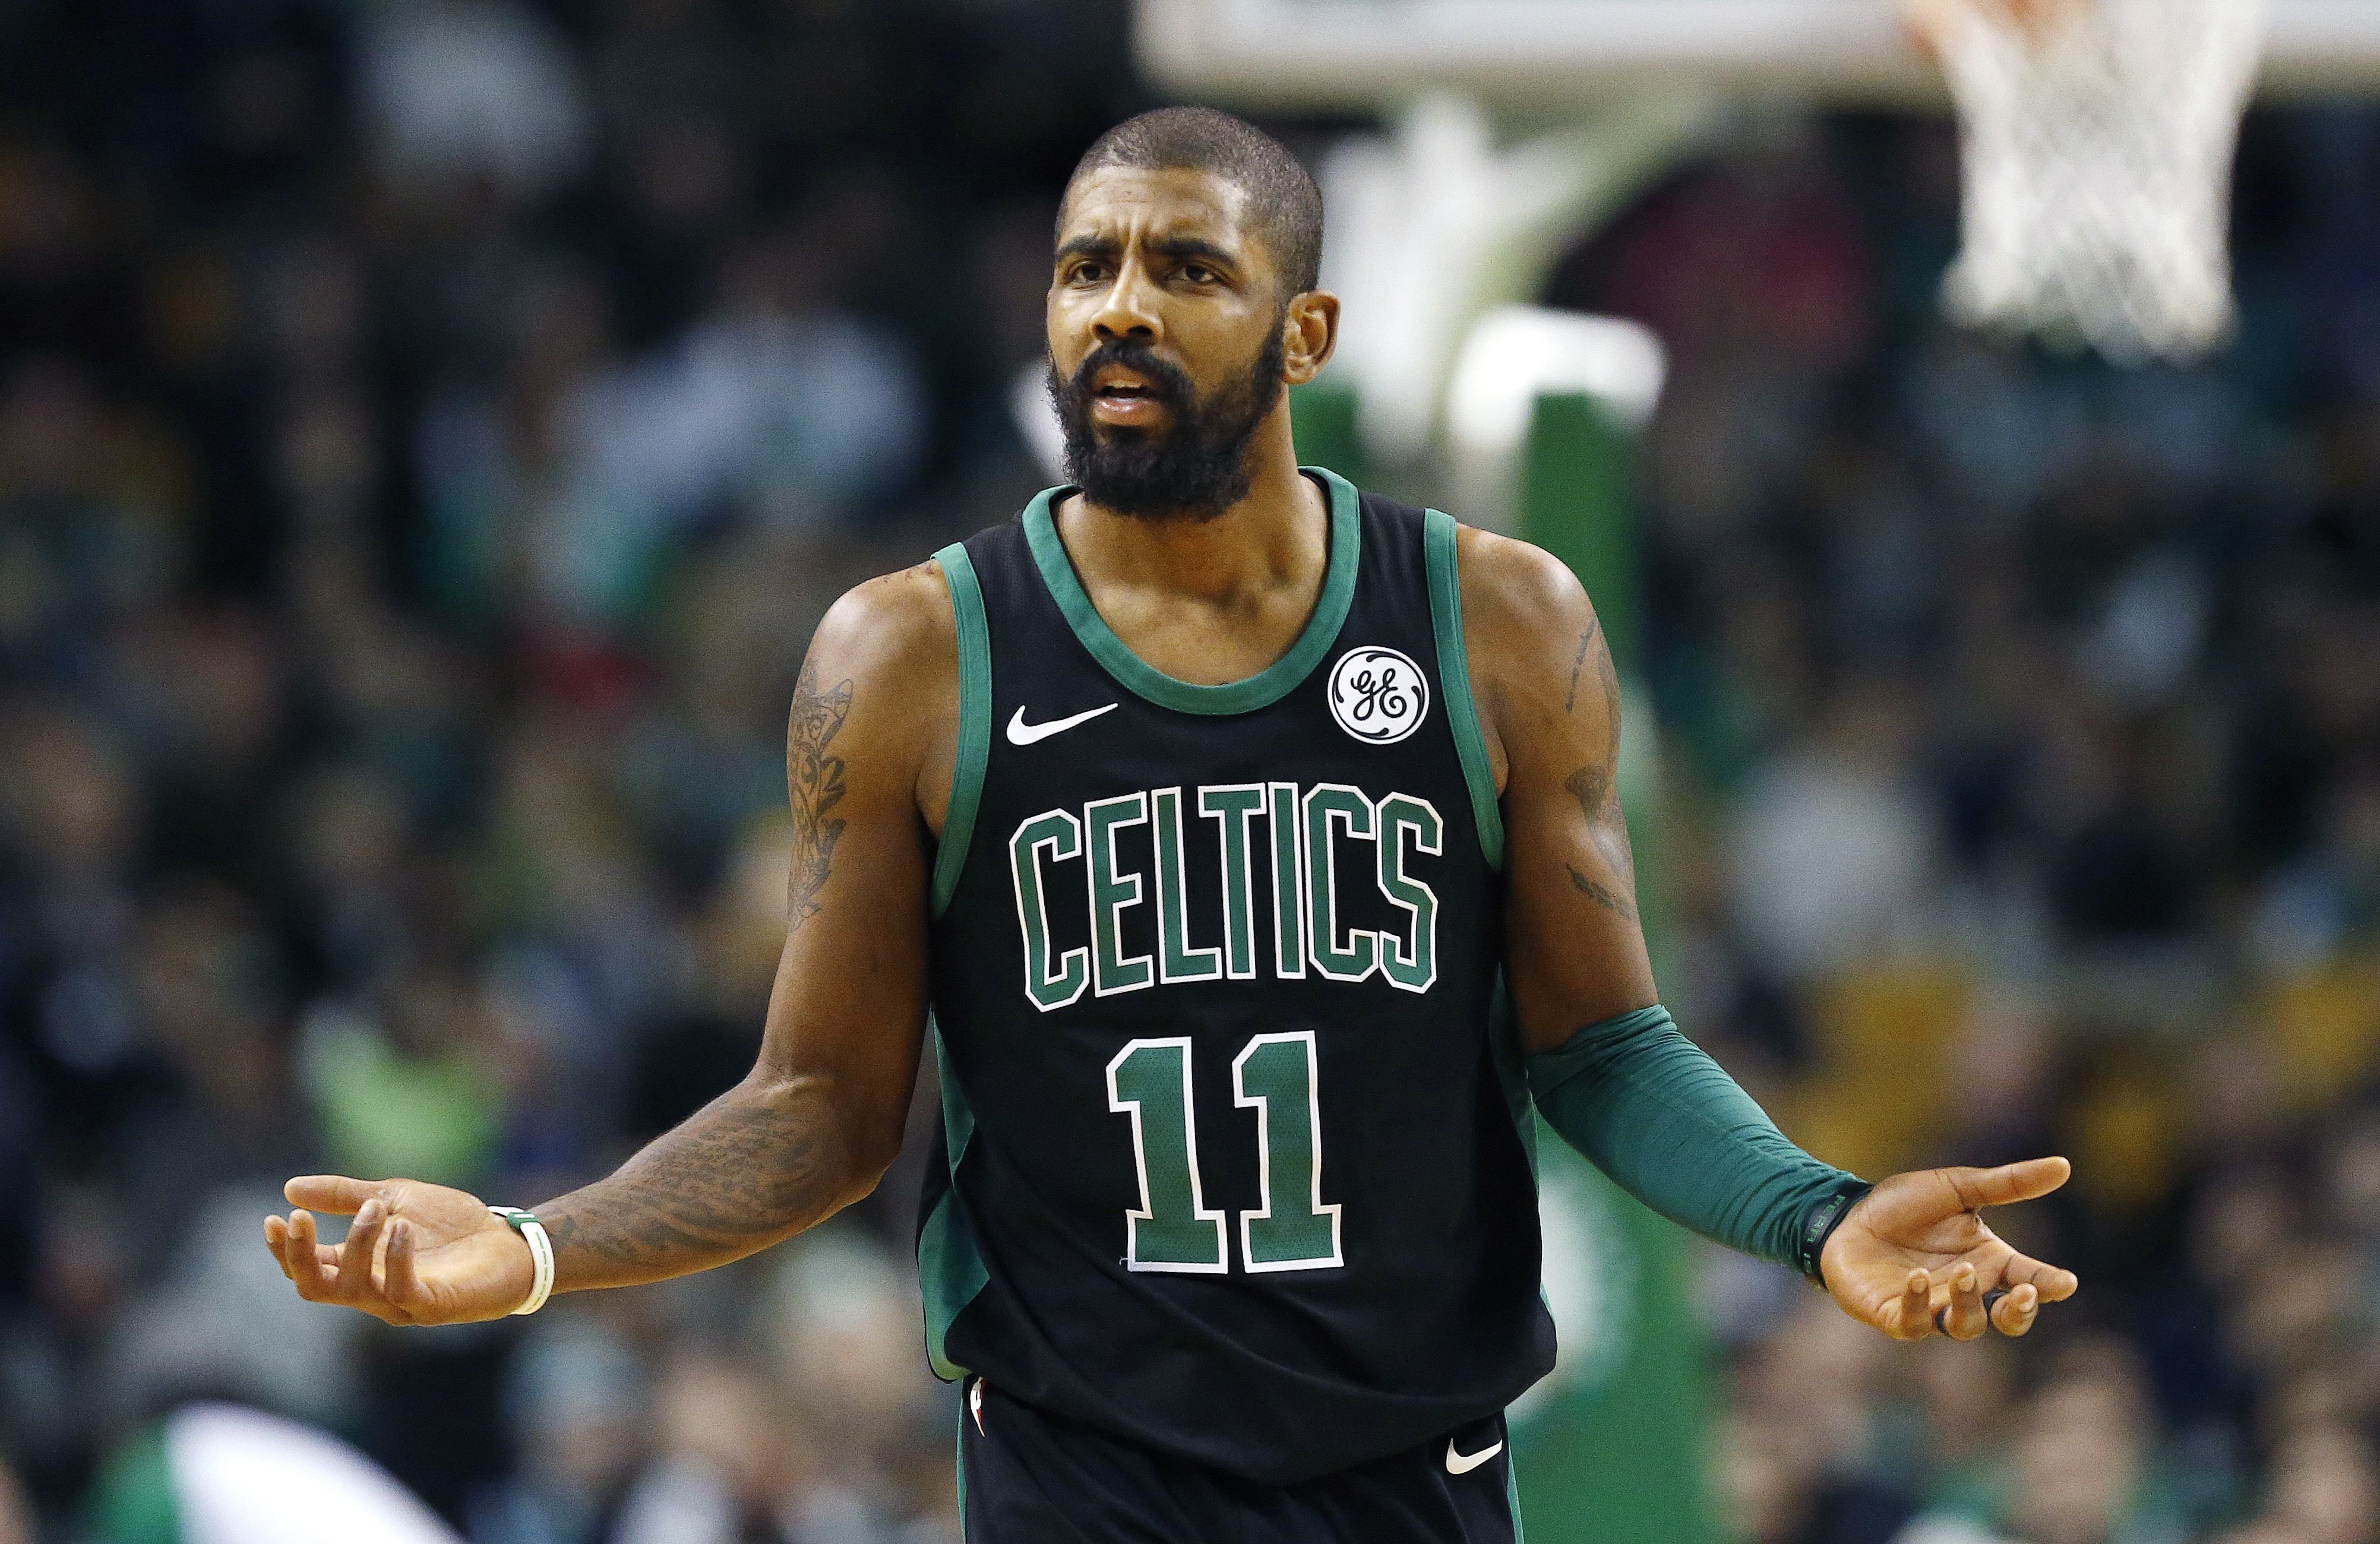 Boston Celtics news: Kyrie Irving takes trip to Japan, confirms he's  shooting a documentary - masslive.com